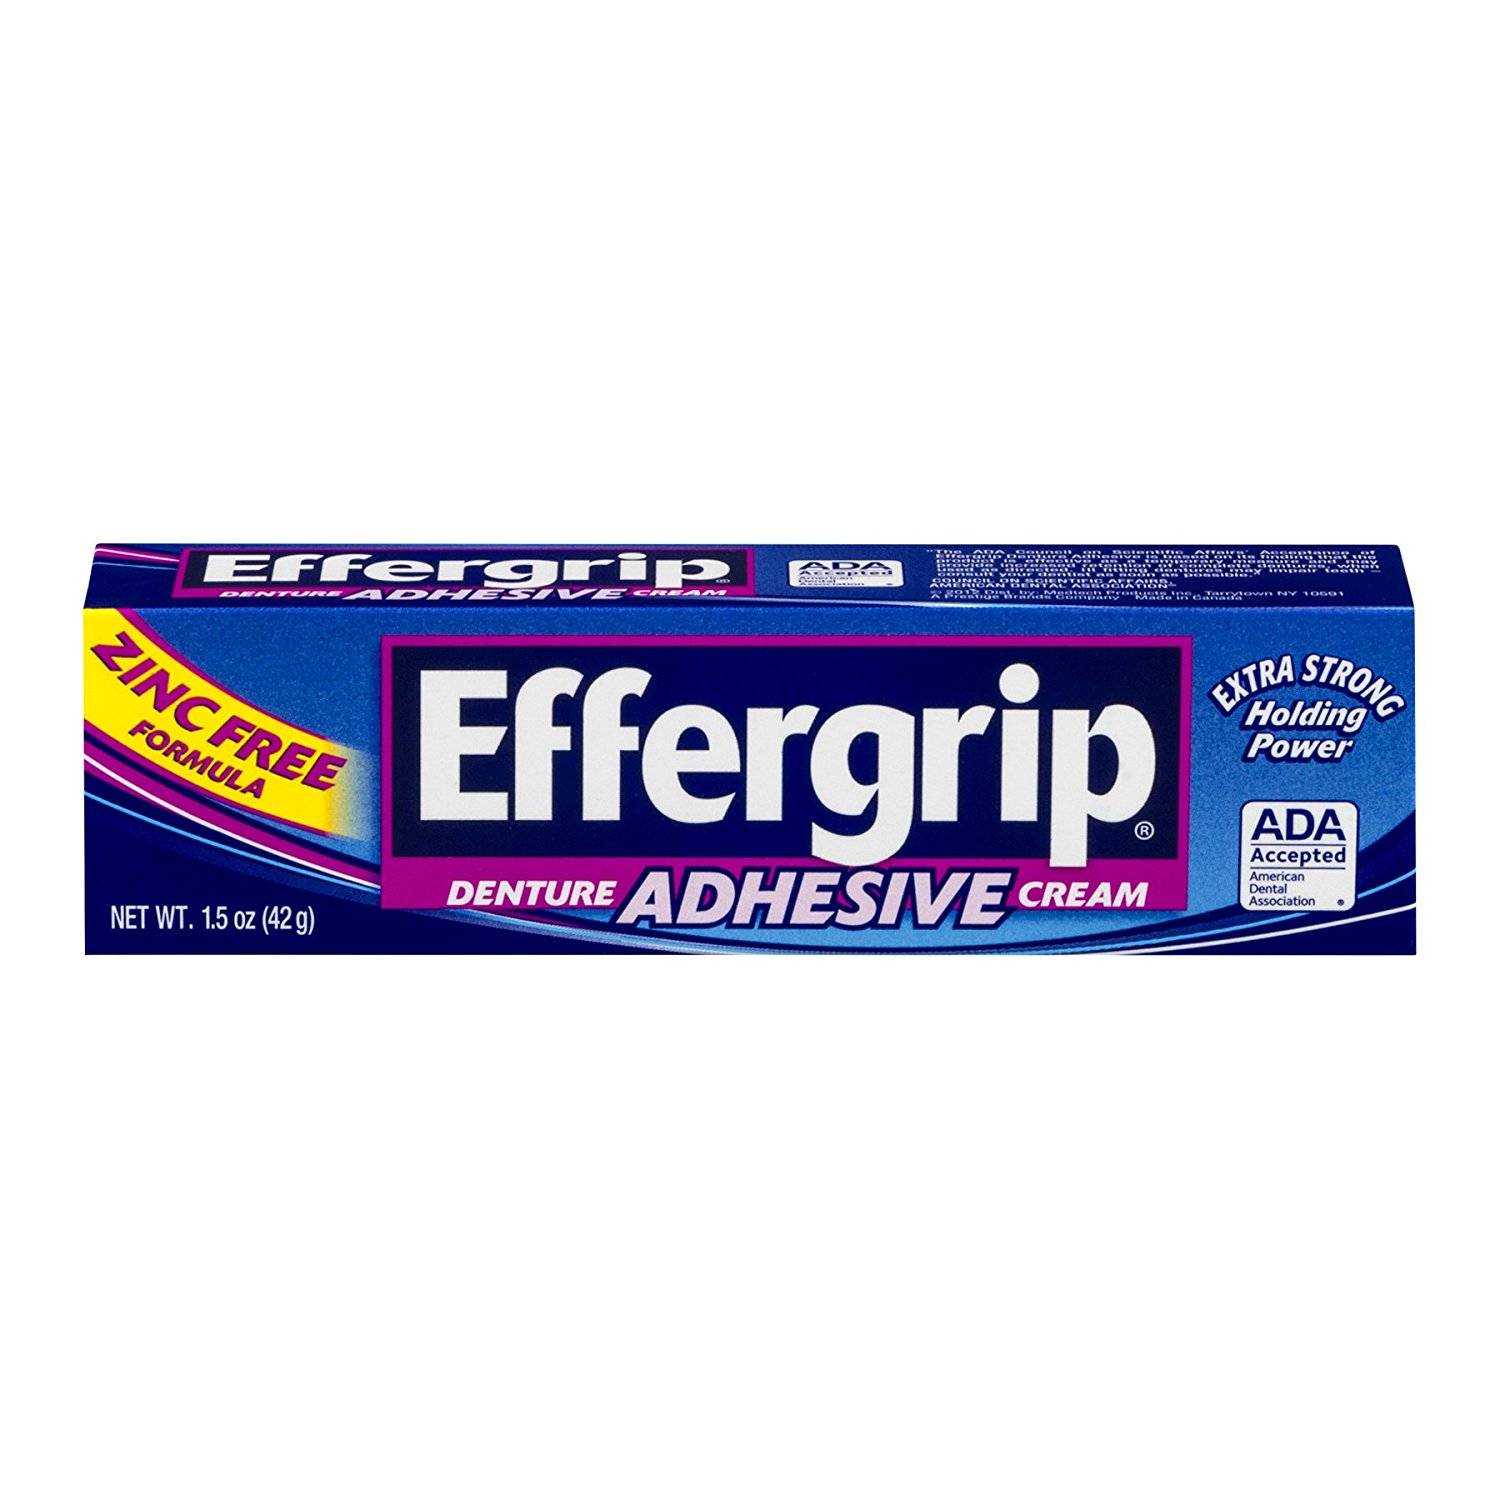 Effergrip Denture Adhesive Cream Zinc Free Formula Extra Strong Holding Power - 1.5 Oz (42 g)